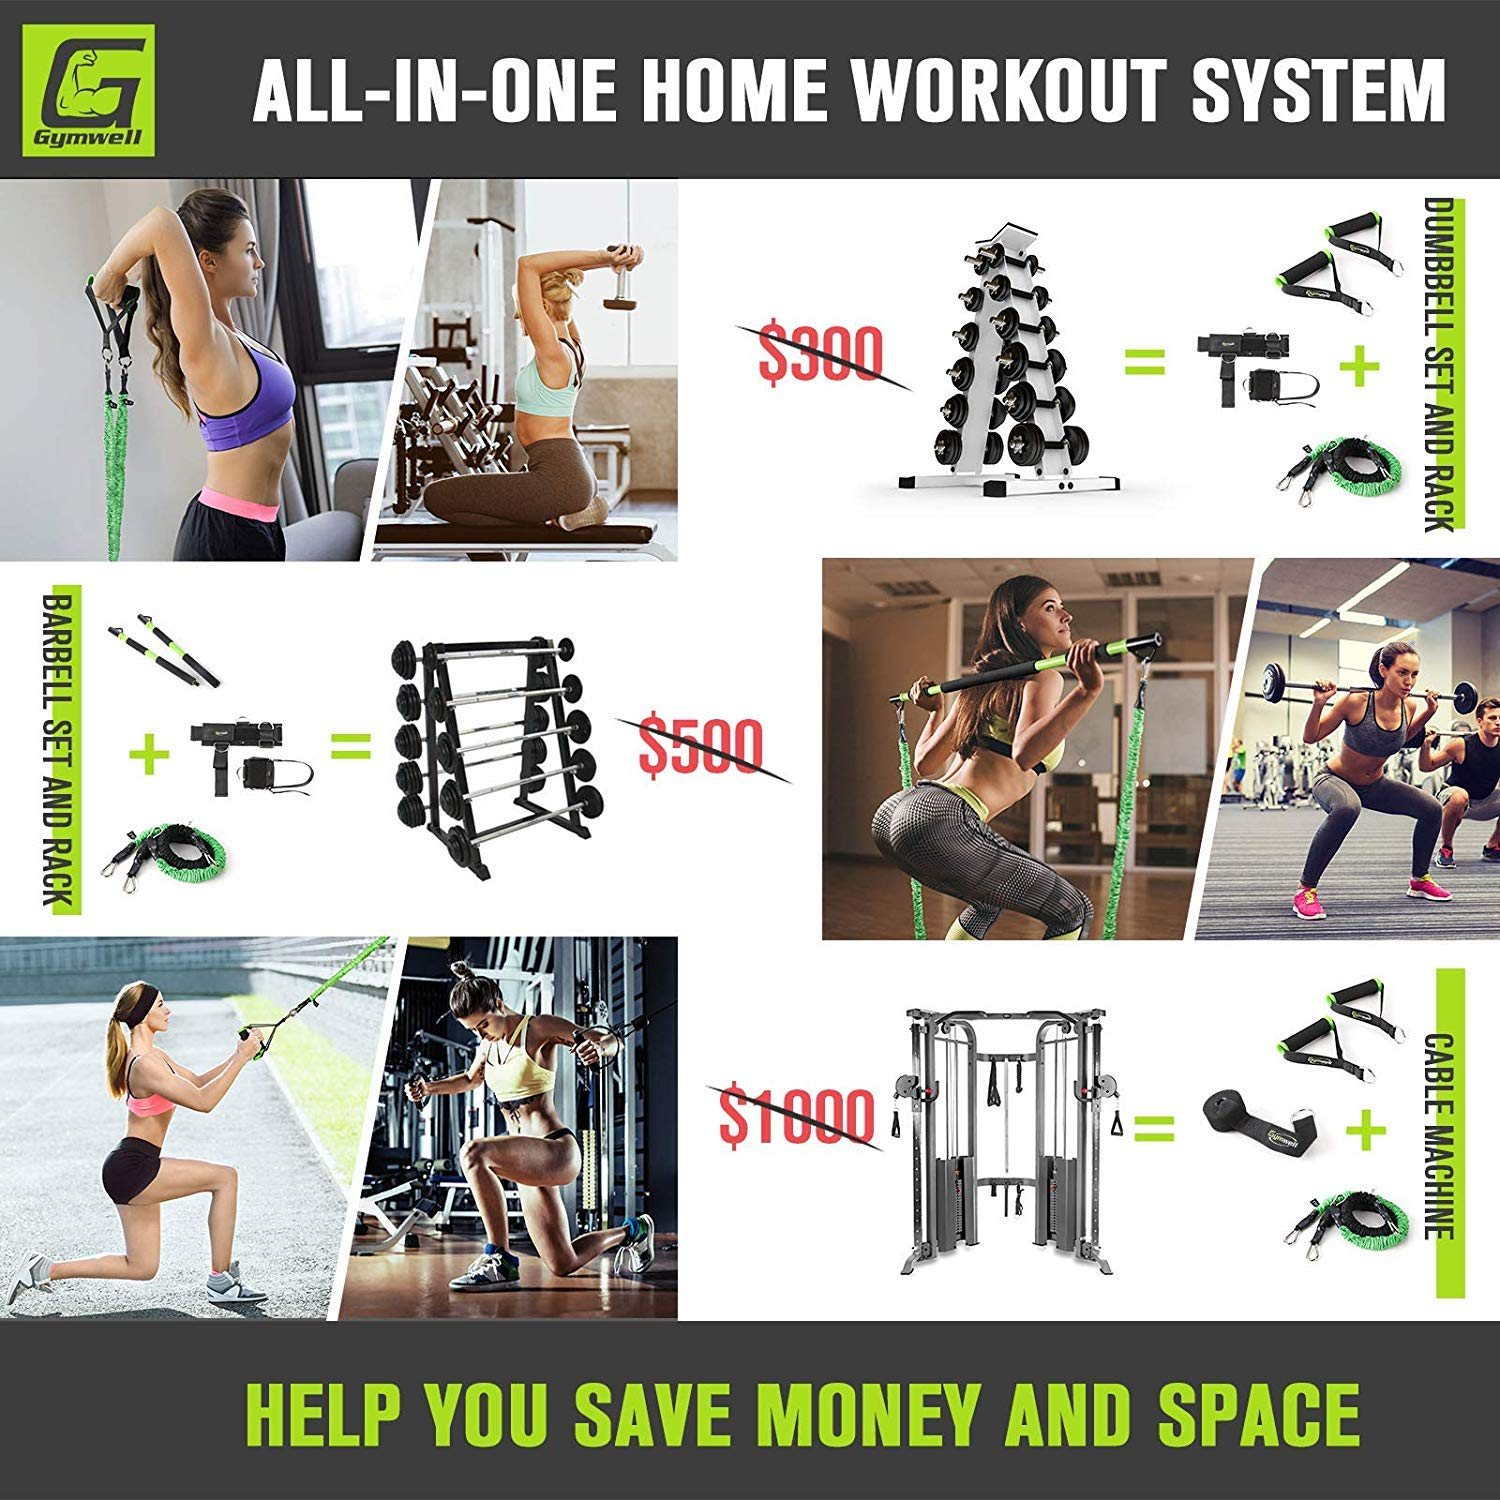 Gymwell Portable Resistance Workout Set, Total Body Workout Equipment for Home, Office or Outdoor with 3 Sets of Resistance Bands (Green - Full Gym) by Gymwell (Image #4)